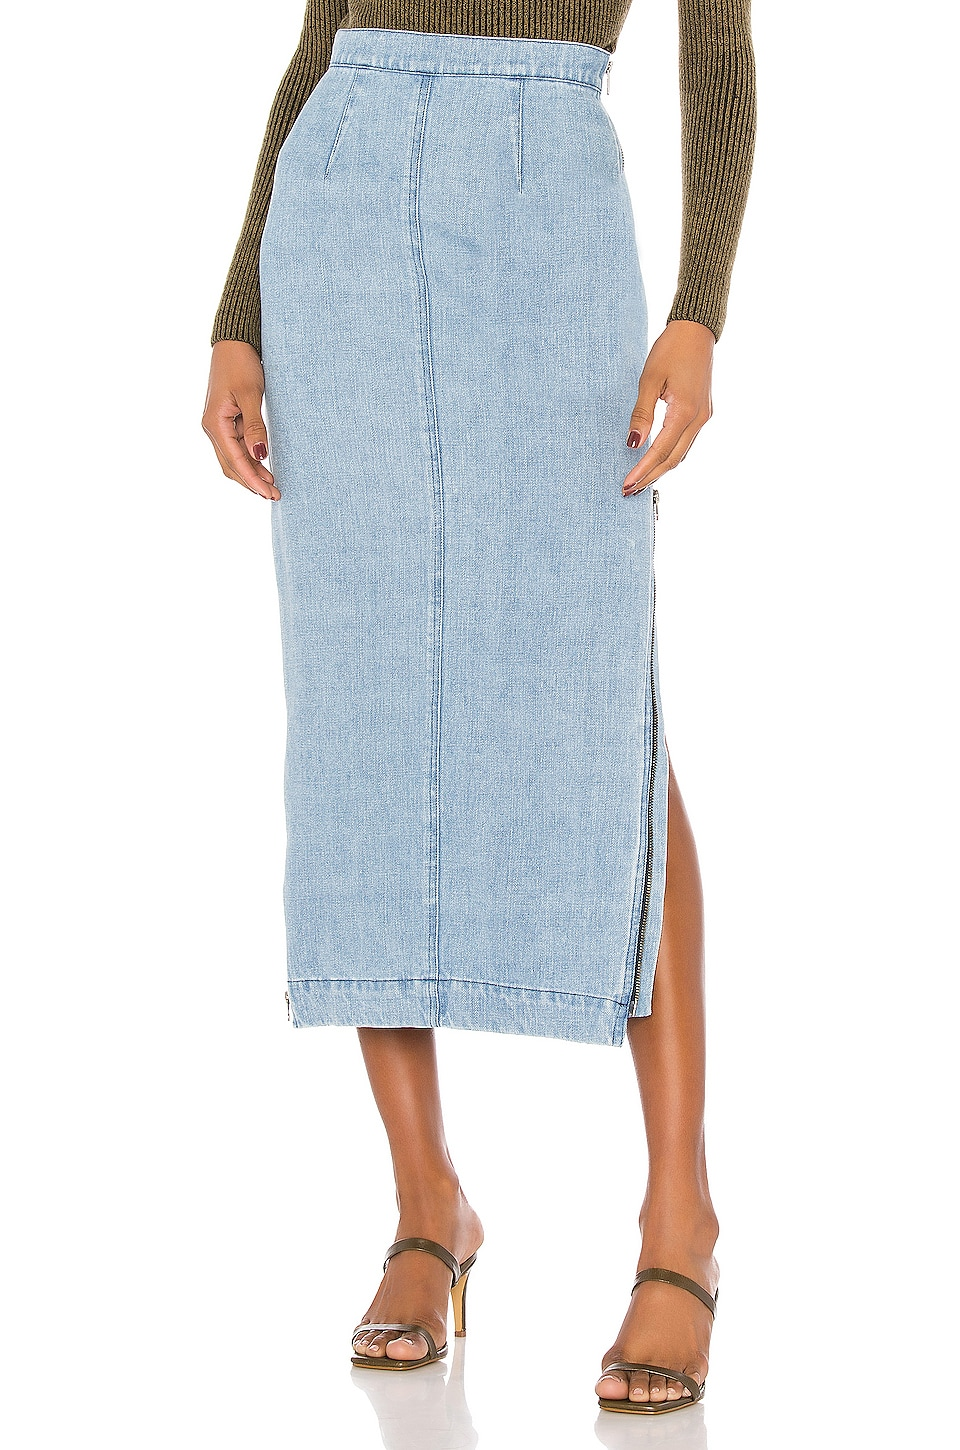 Mara Hoffman Uma Skirt in Split Denim